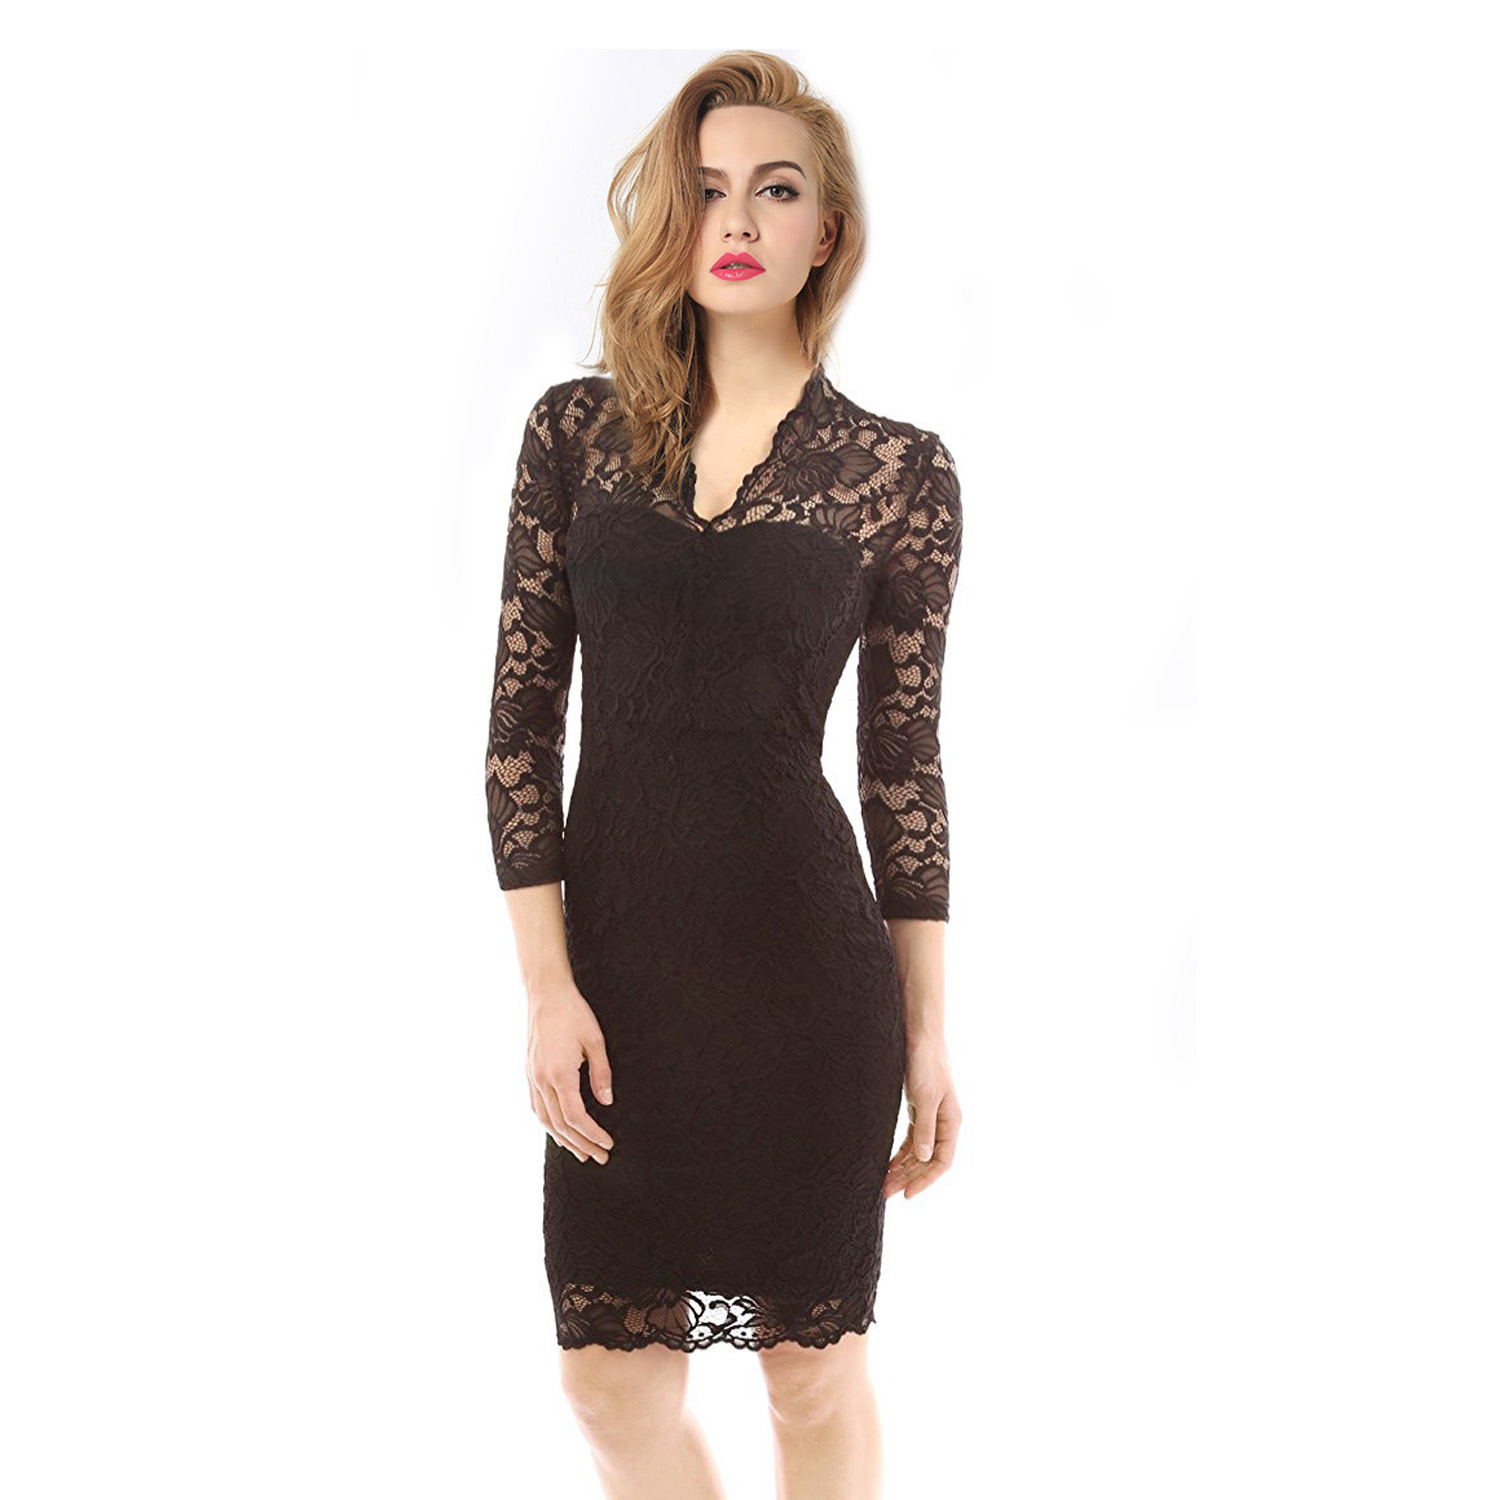 Womens v neck 34 sleeve floral lace cocktail dress etaoline womens v neck 34 sleeve floral lace cocktail dress ombrellifo Image collections